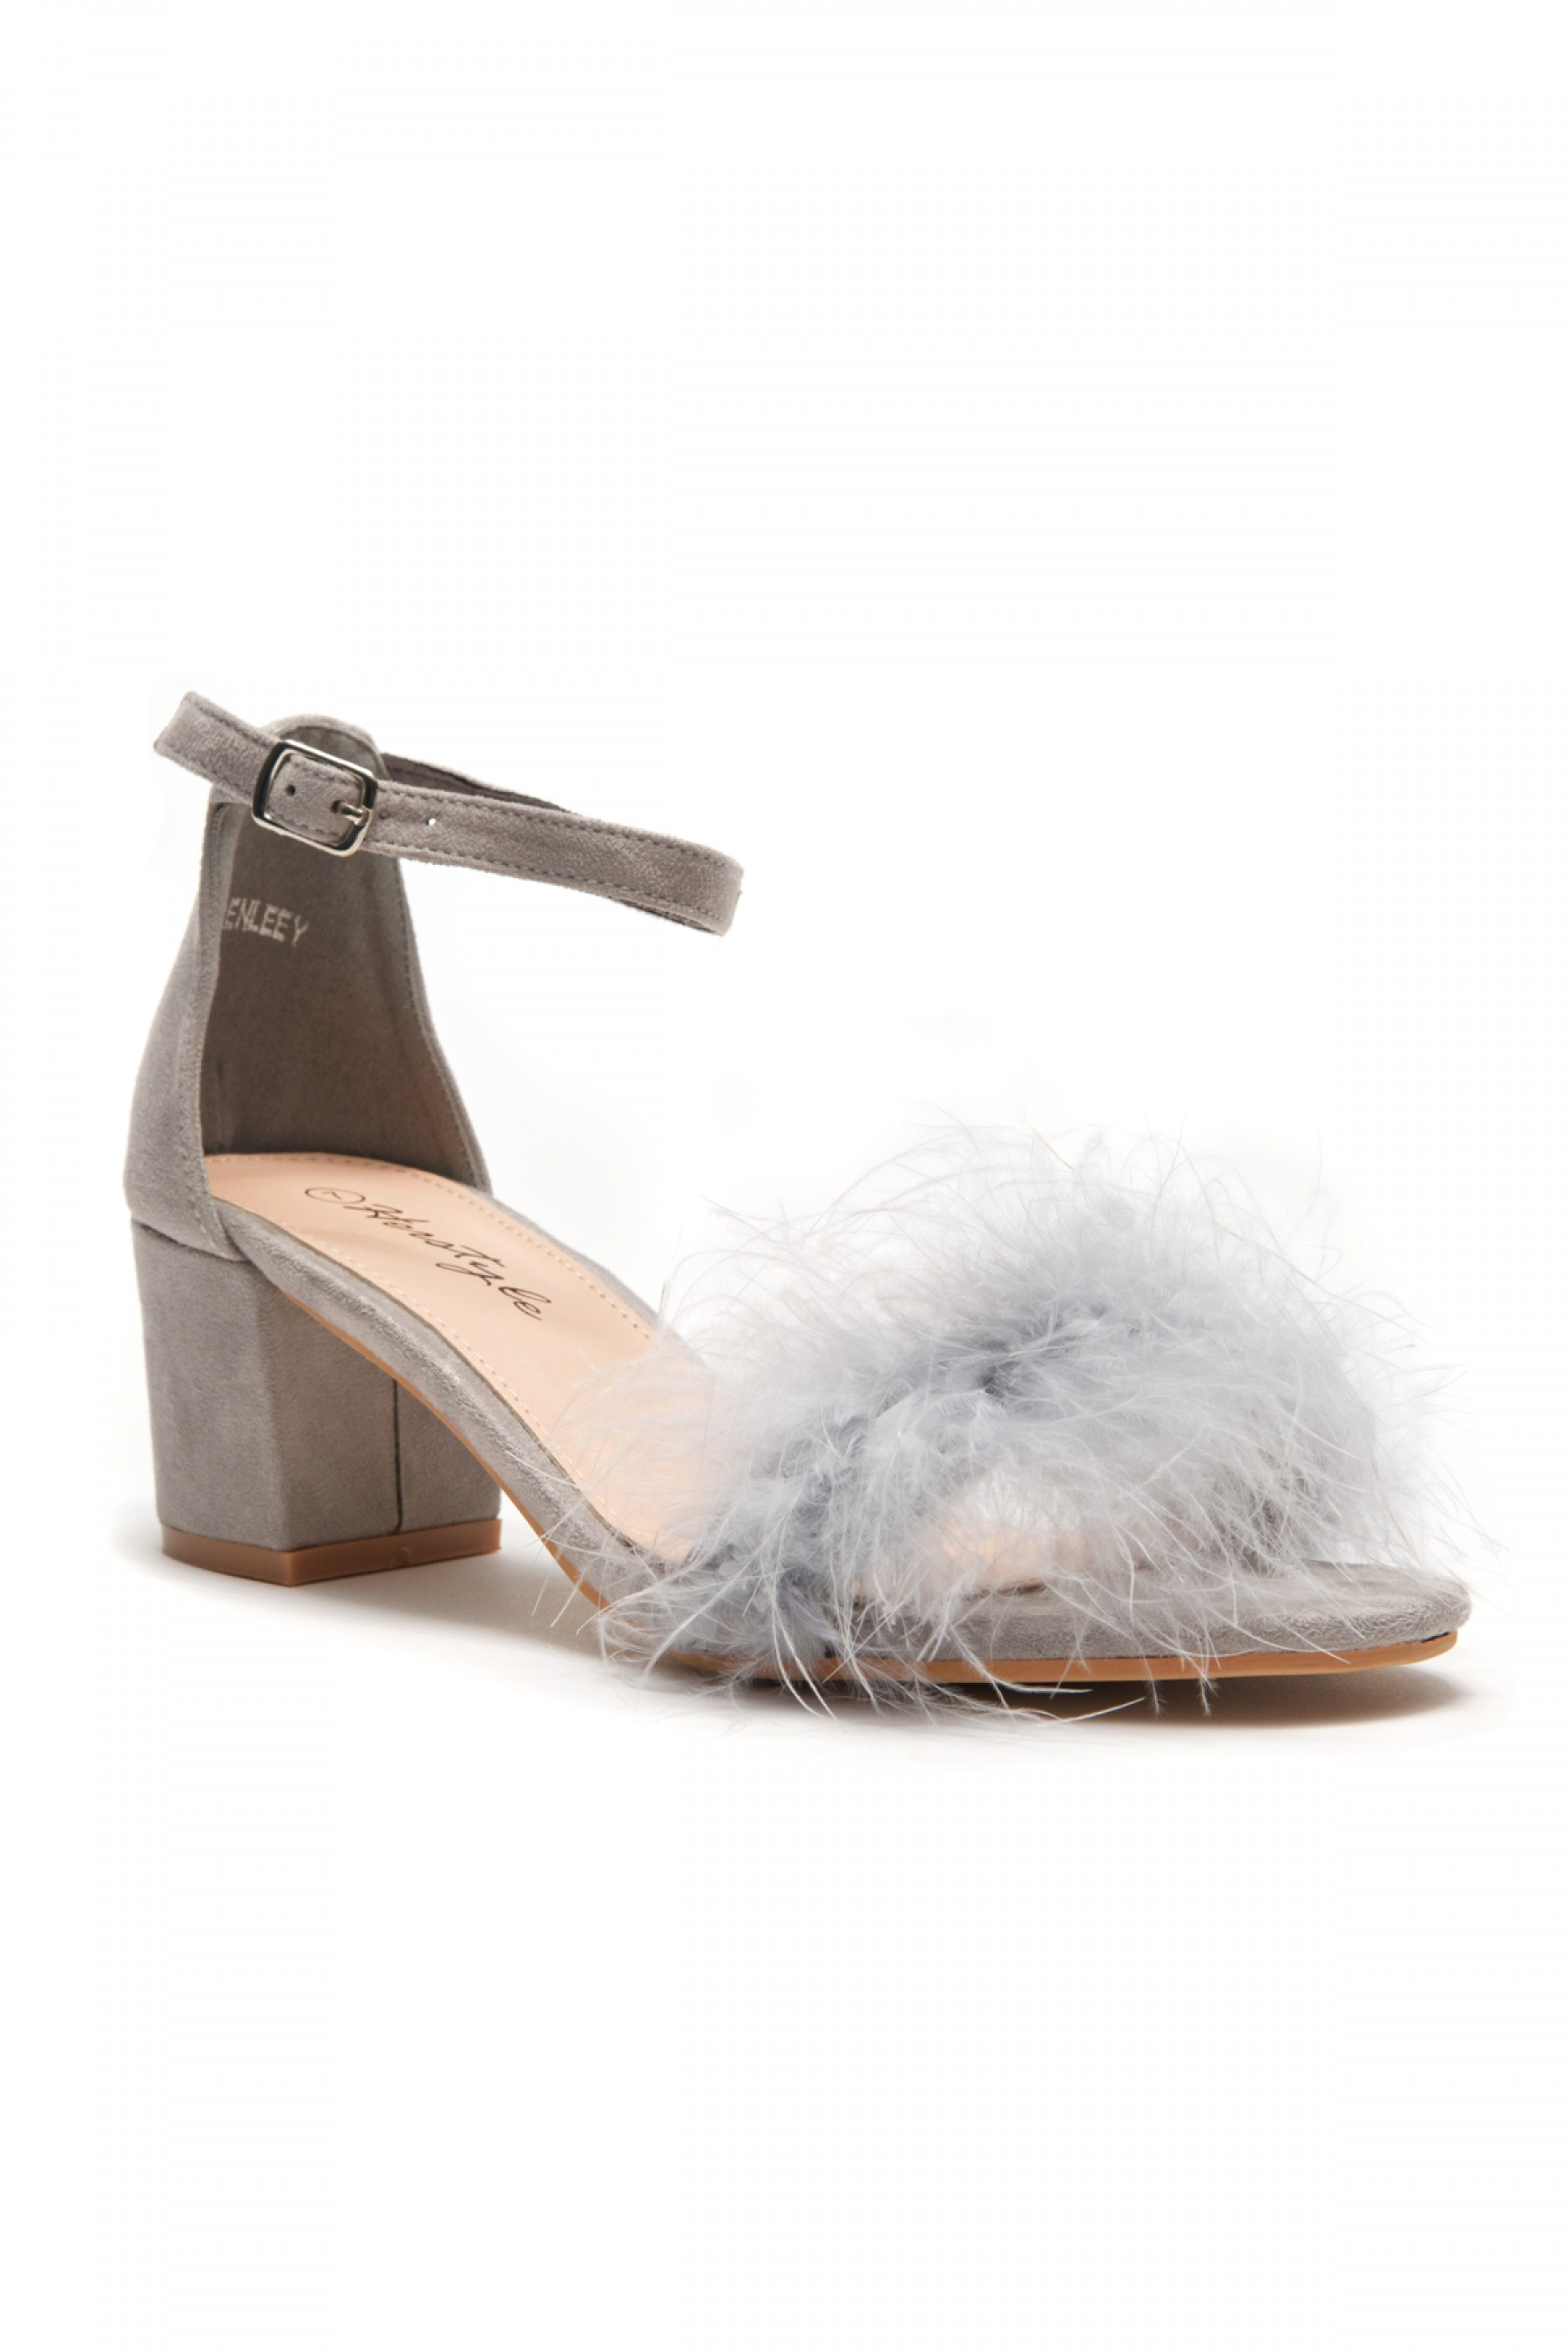 HerStyle Women's Manmade Brenleey Suede Faux Feather Accent Ankle Strap Low Chunky Heel Sandal - Grey